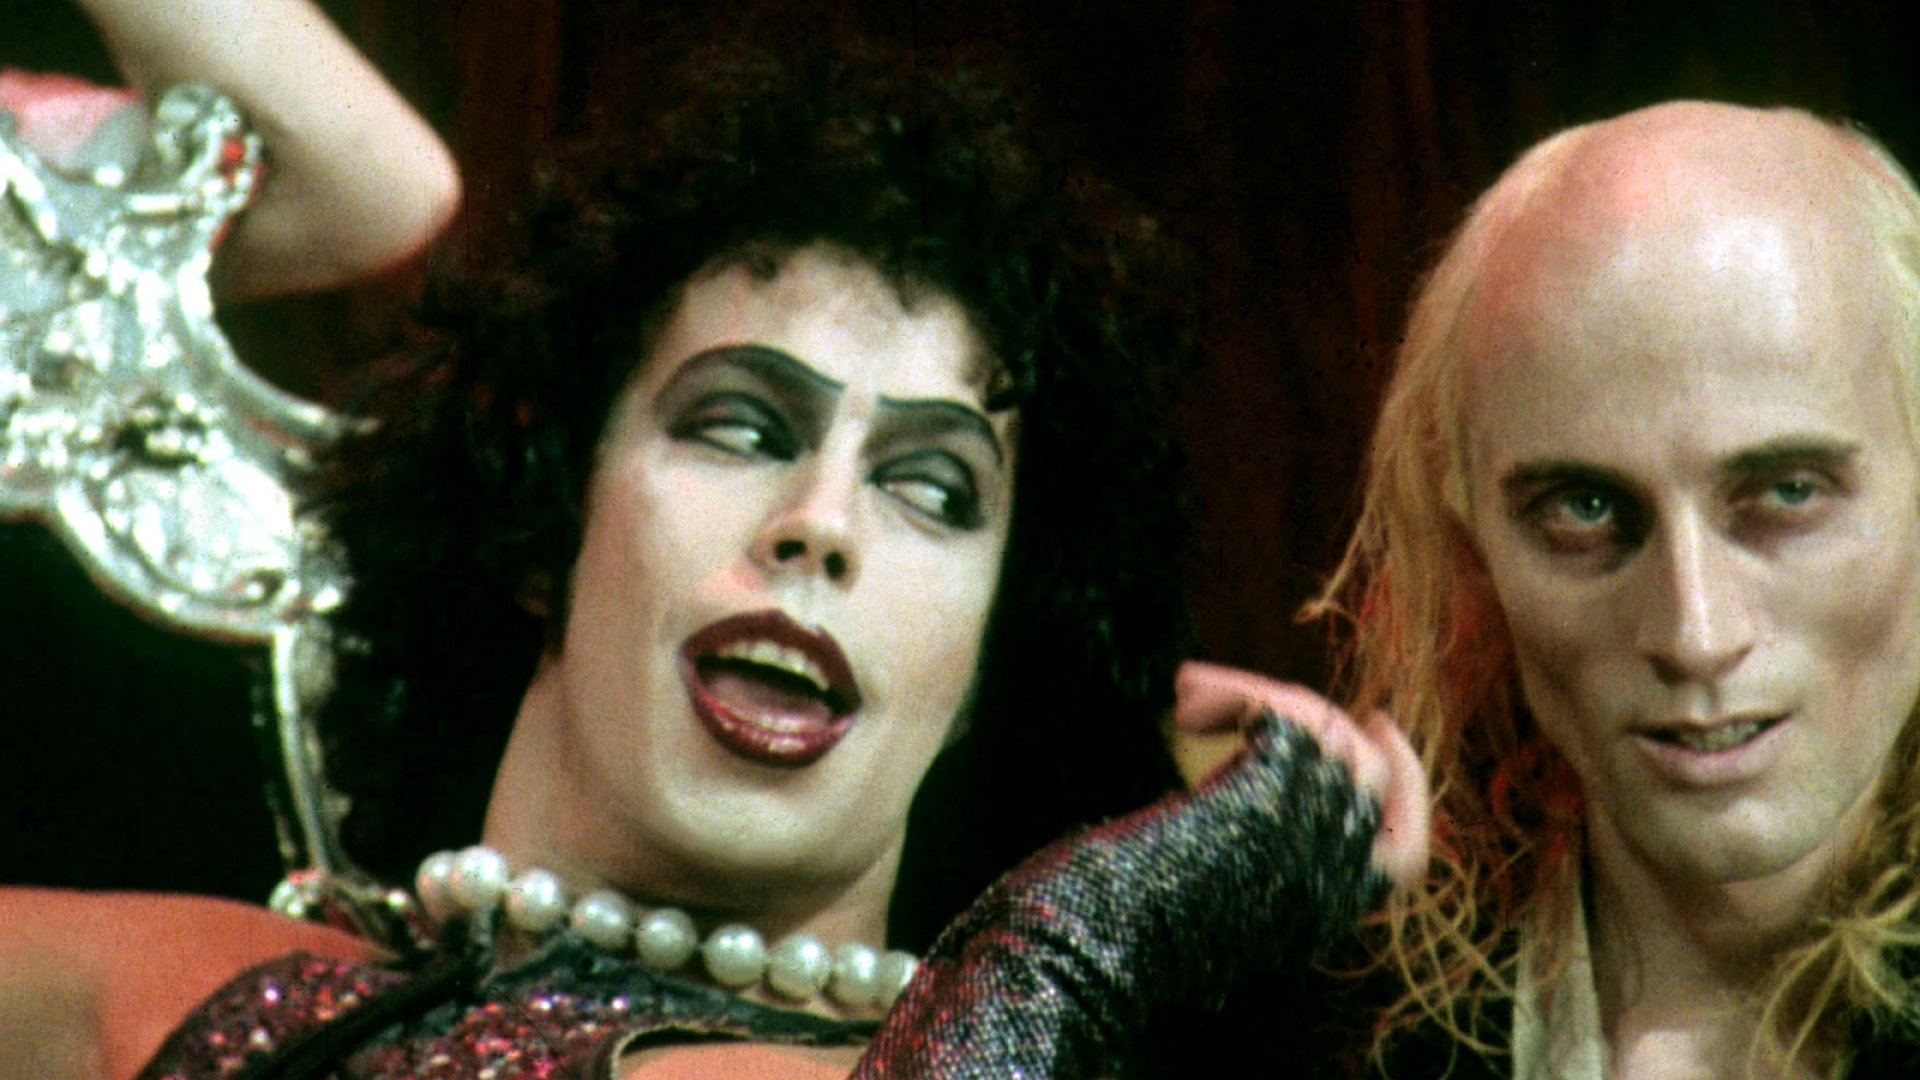 Fans celebrate the 40th anniversary of <em>The Rocky Horror Picture Show</em> outside London's Royal Albert Hall.